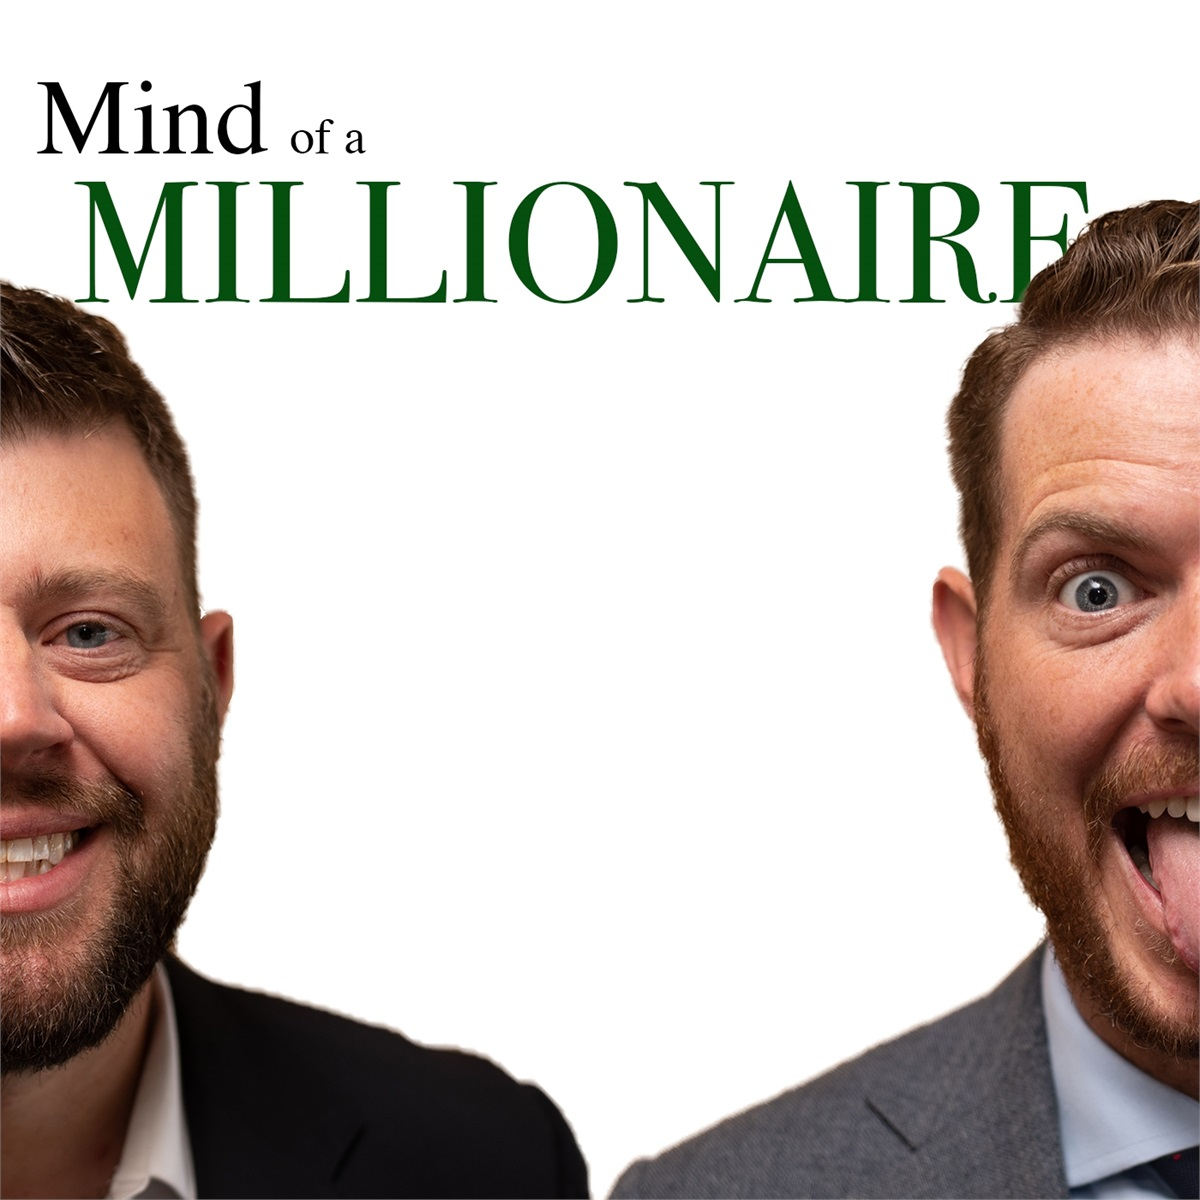 Mind of a Millionaire: Awkward Money Conversations Pt. 2